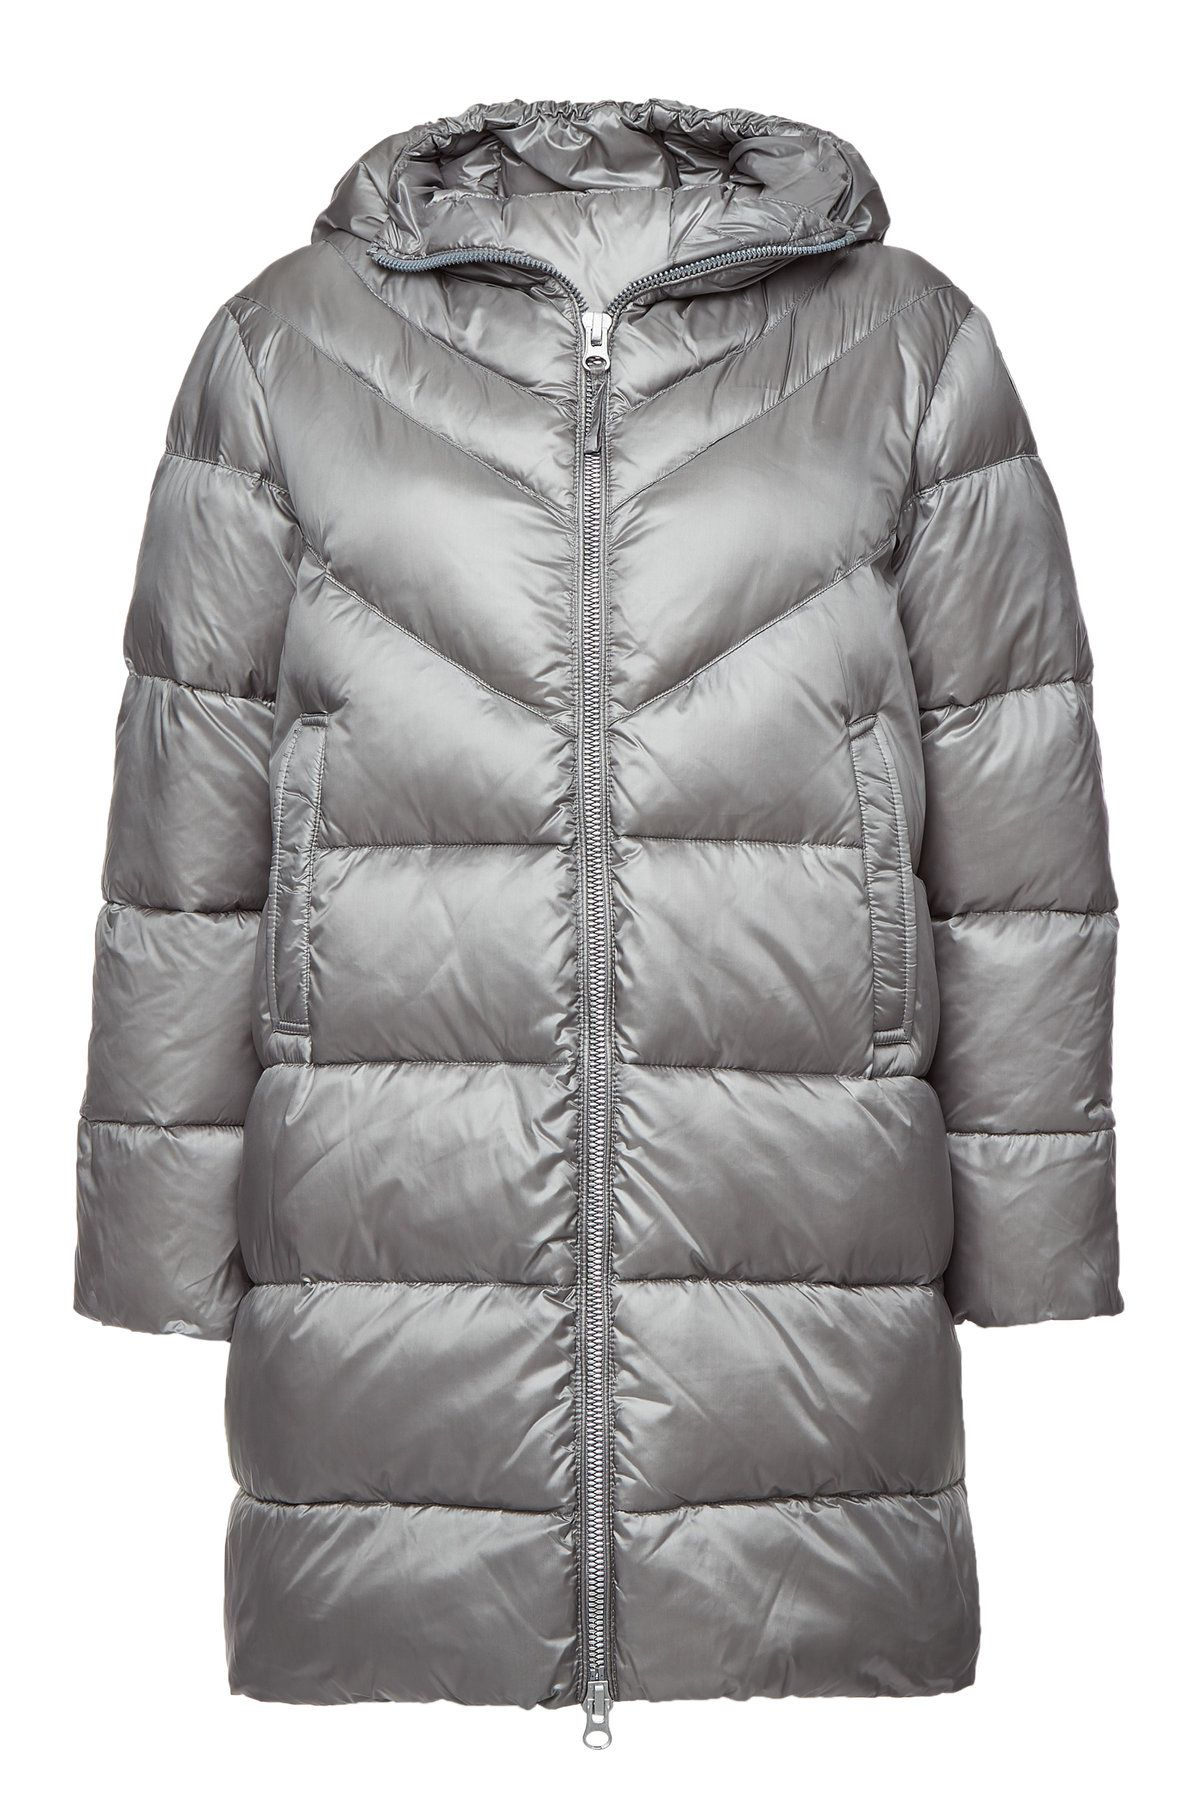 aaa743e4f7d Puffed up, padded and perfect for the colder months ahead, this glossy  silver Blauer coat is made with feathers and down for the most indulgent  feel and ...